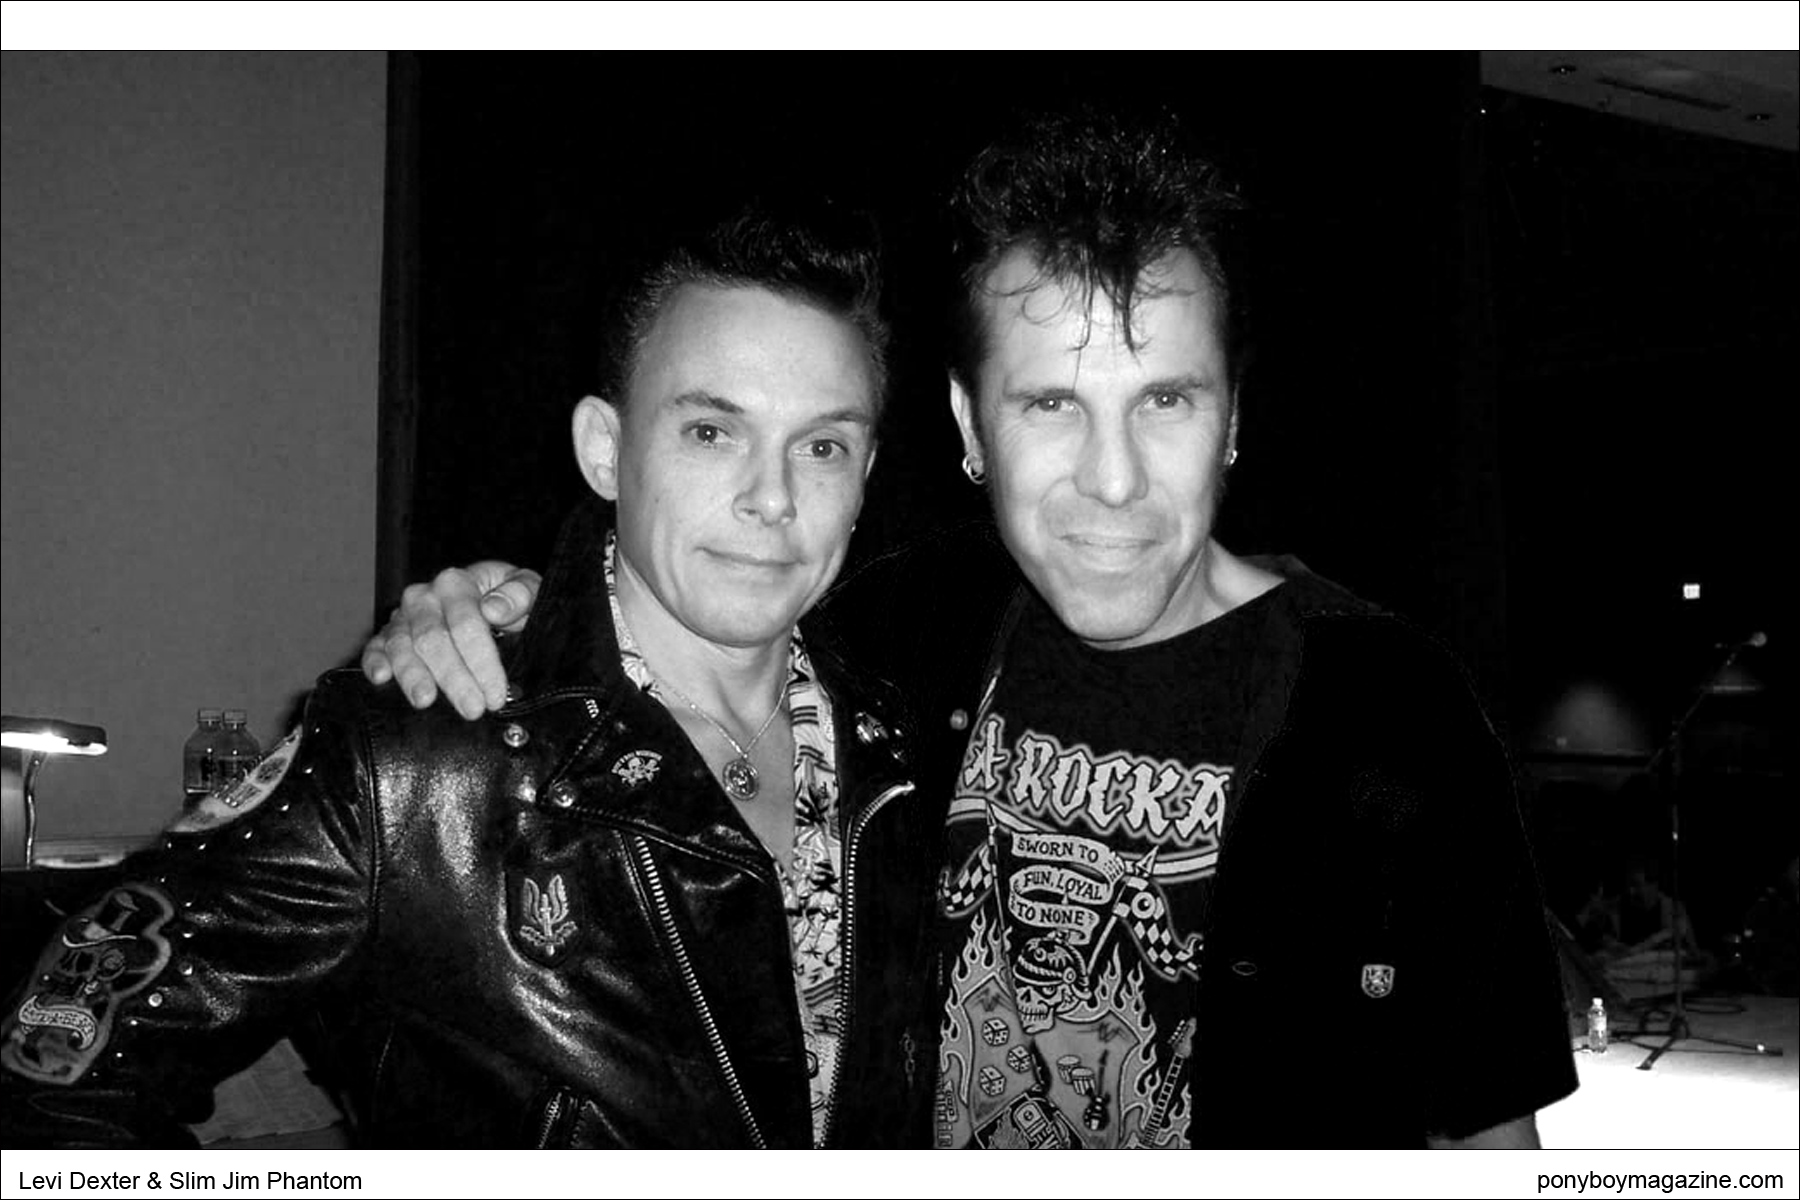 80's Rockabilly legends Levi Dexter and Slim Jim Phantom, Ponyboy Magazine.